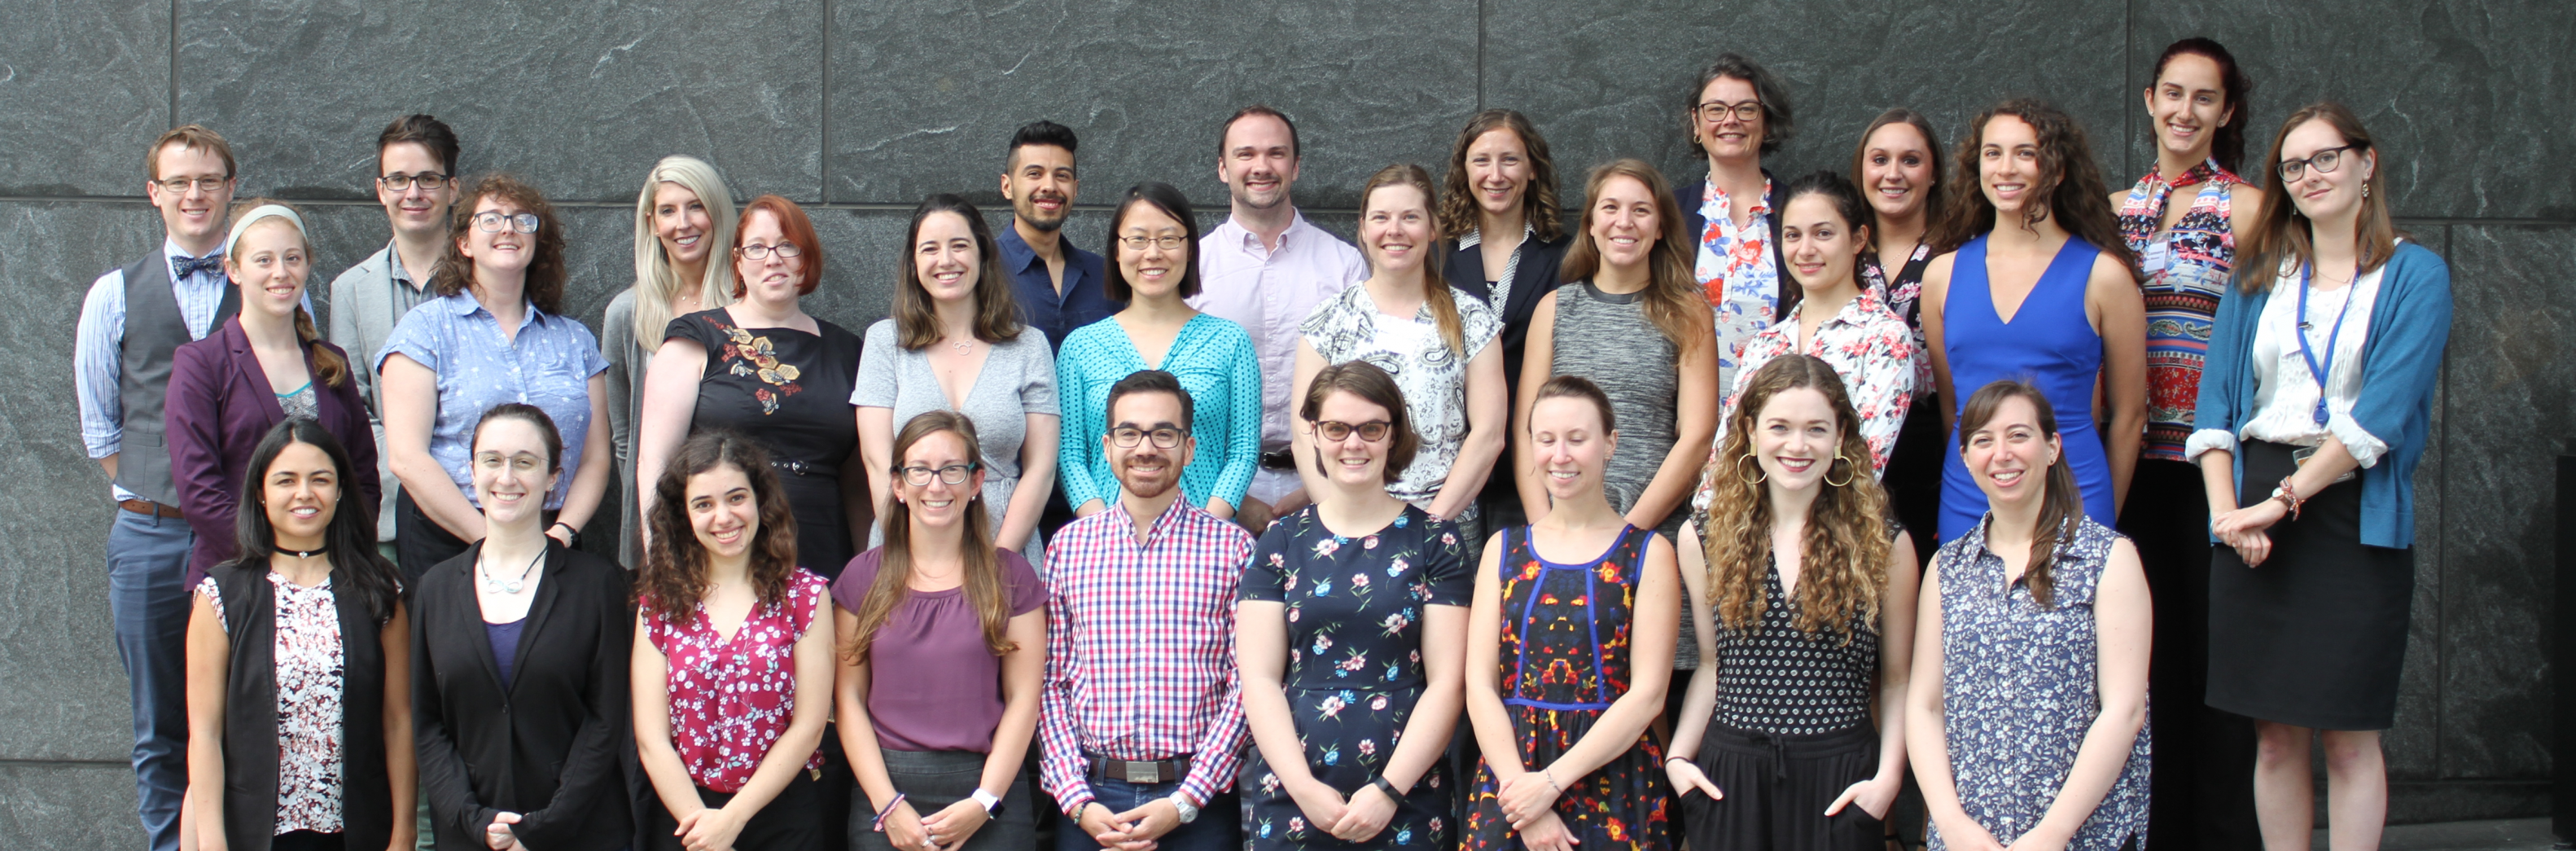 The 2019 Class of Mass Media Science and Engineering Fellows and Diverse Voices in Science Journalism Interns